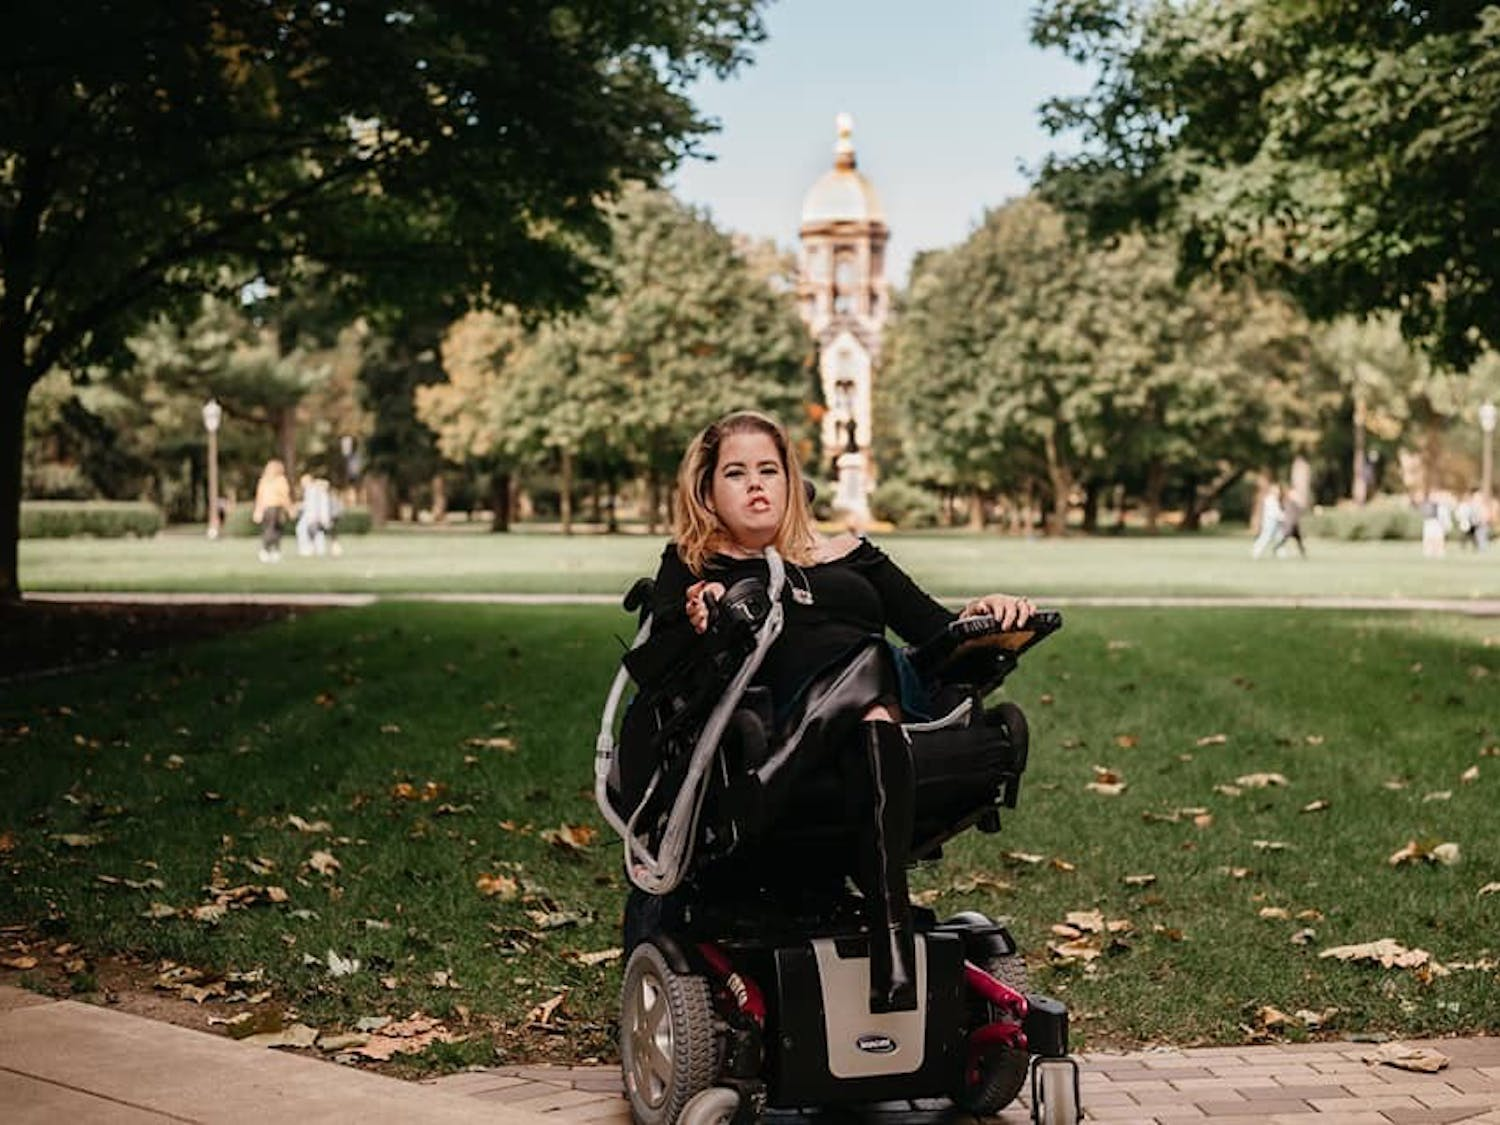 Megan Crowley already has two degrees from Notre Dame, but she's not done yet. Crowley has lived her entire life with a rare genetic disease, and she's ready to help people like her. Photo courtesy of Megan Crowley, Hey Sisters! Photography.